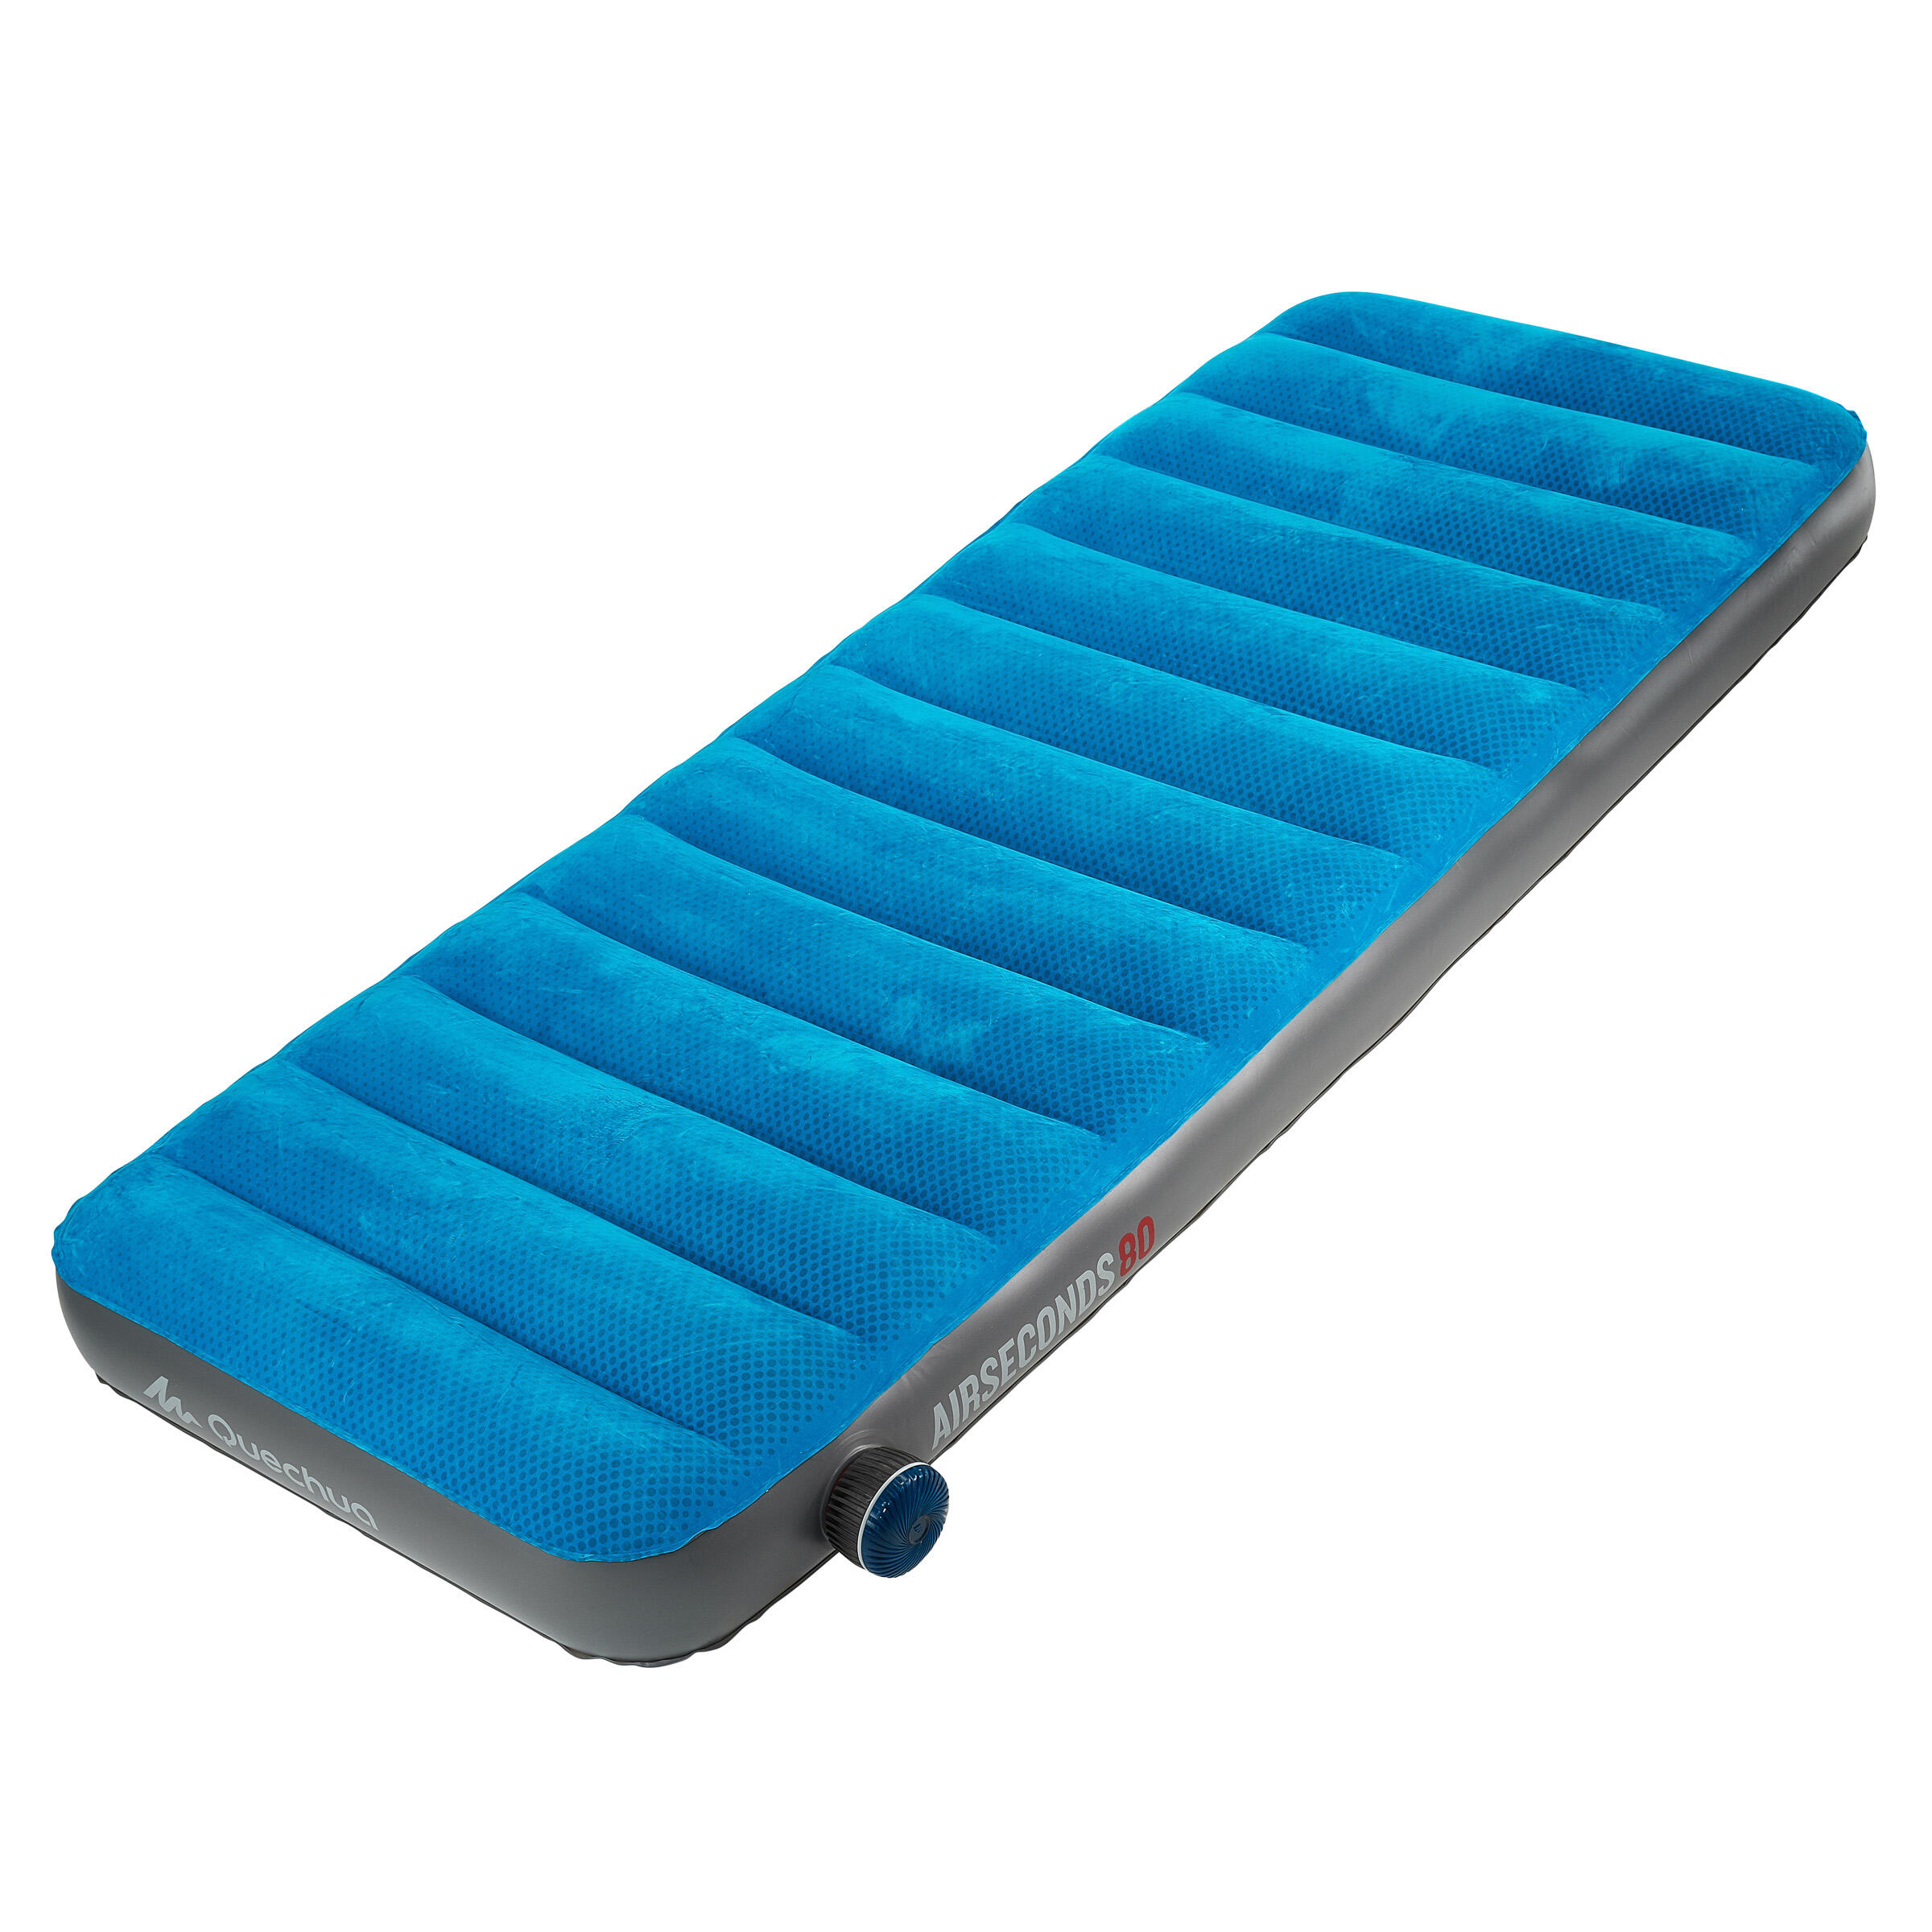 Air 80 Air Seconds Mattress1 Pers Seconds N0wOm8ynv